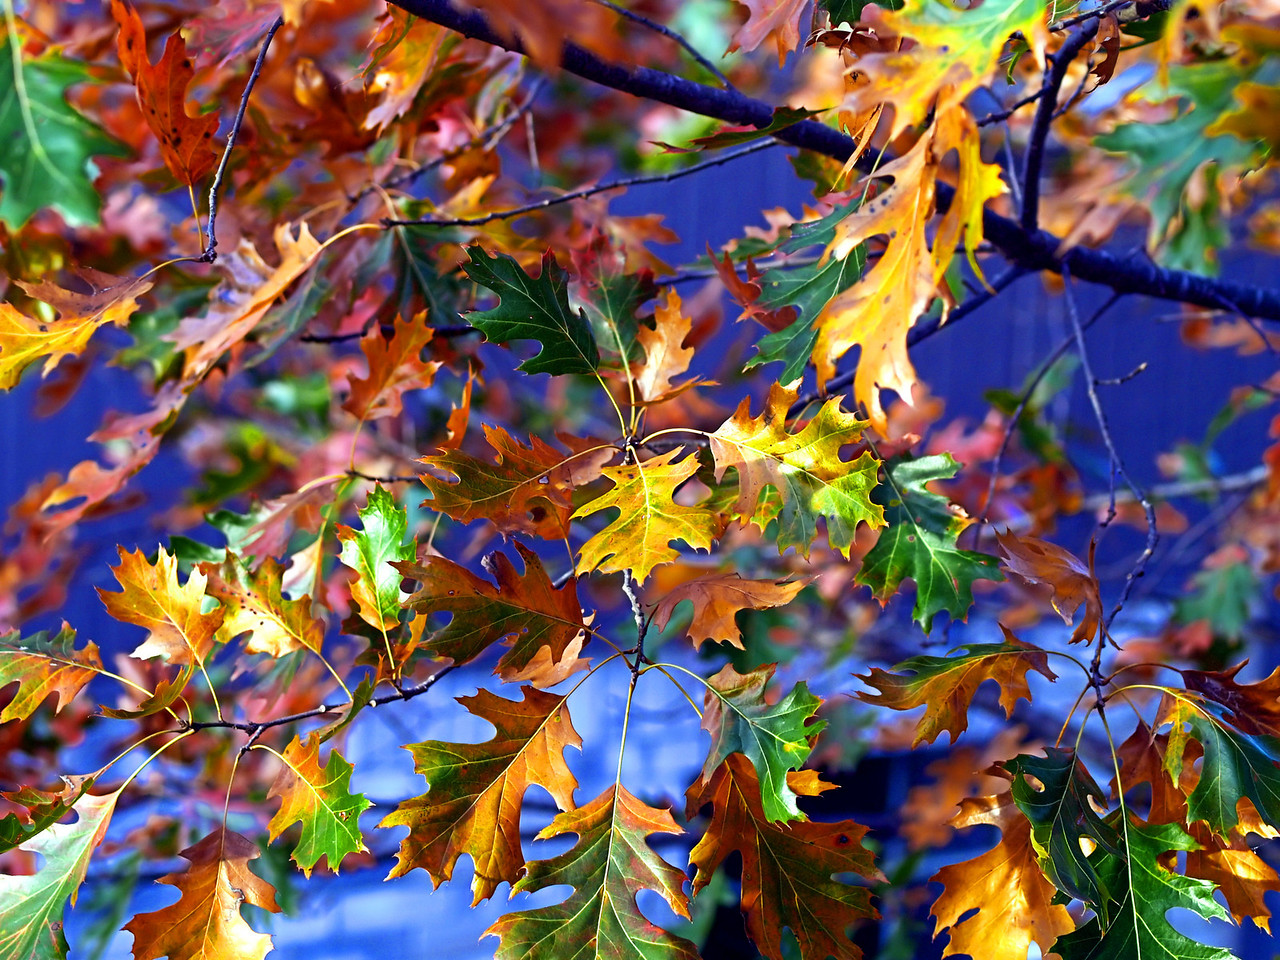 OLYMPUS DIGITAL CAMERA--Red oak leaves showing brilliant fall colors.